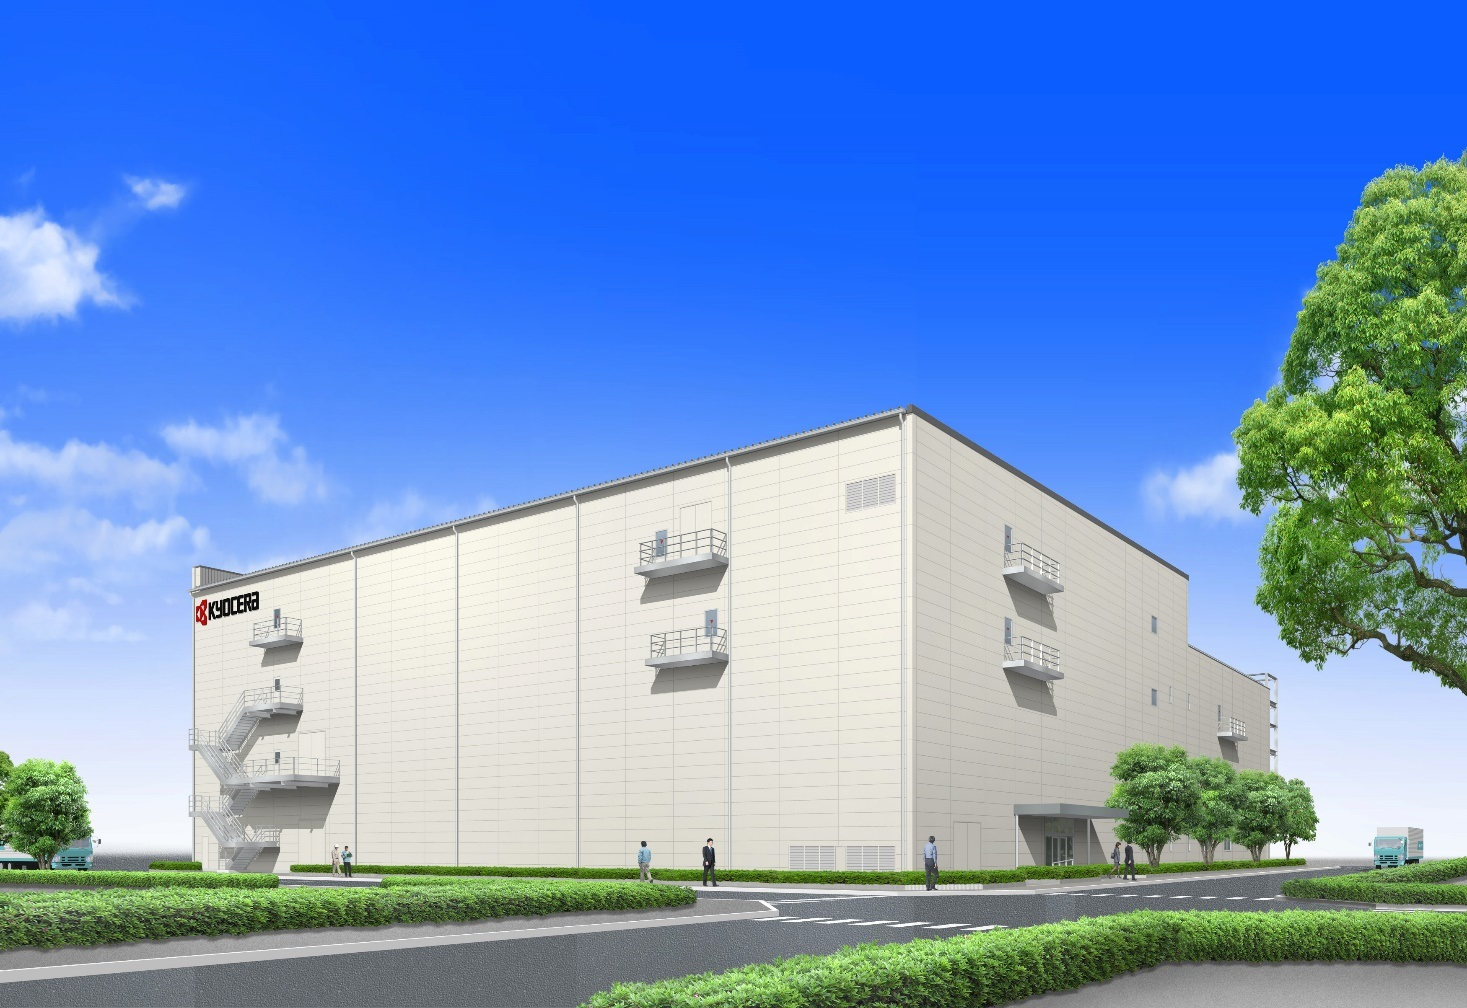 Kyocera_to_Build_New_Facility_in_Shiga__Japan_to_Produce_Automated_Equipment_for__Smart_Factory_.-cps-20096-Image.cpsimage.jpg